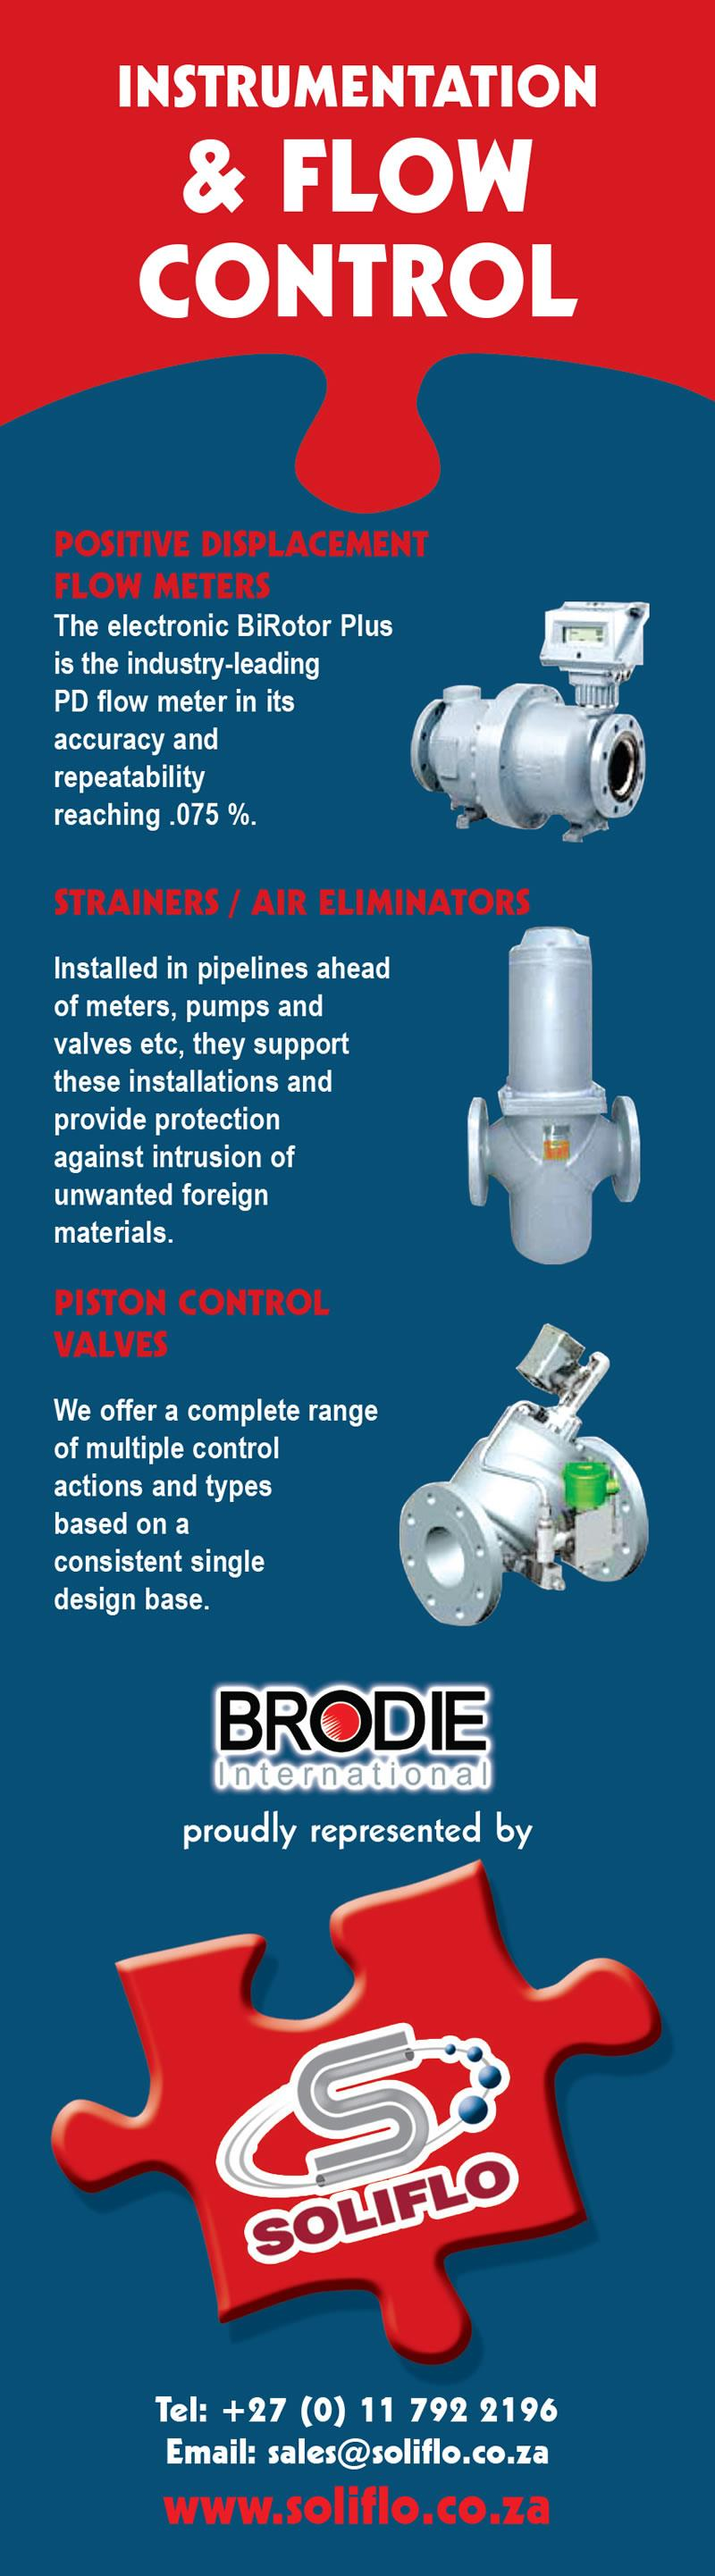 Archive Ad - Instrumentation & Flow Control Ad